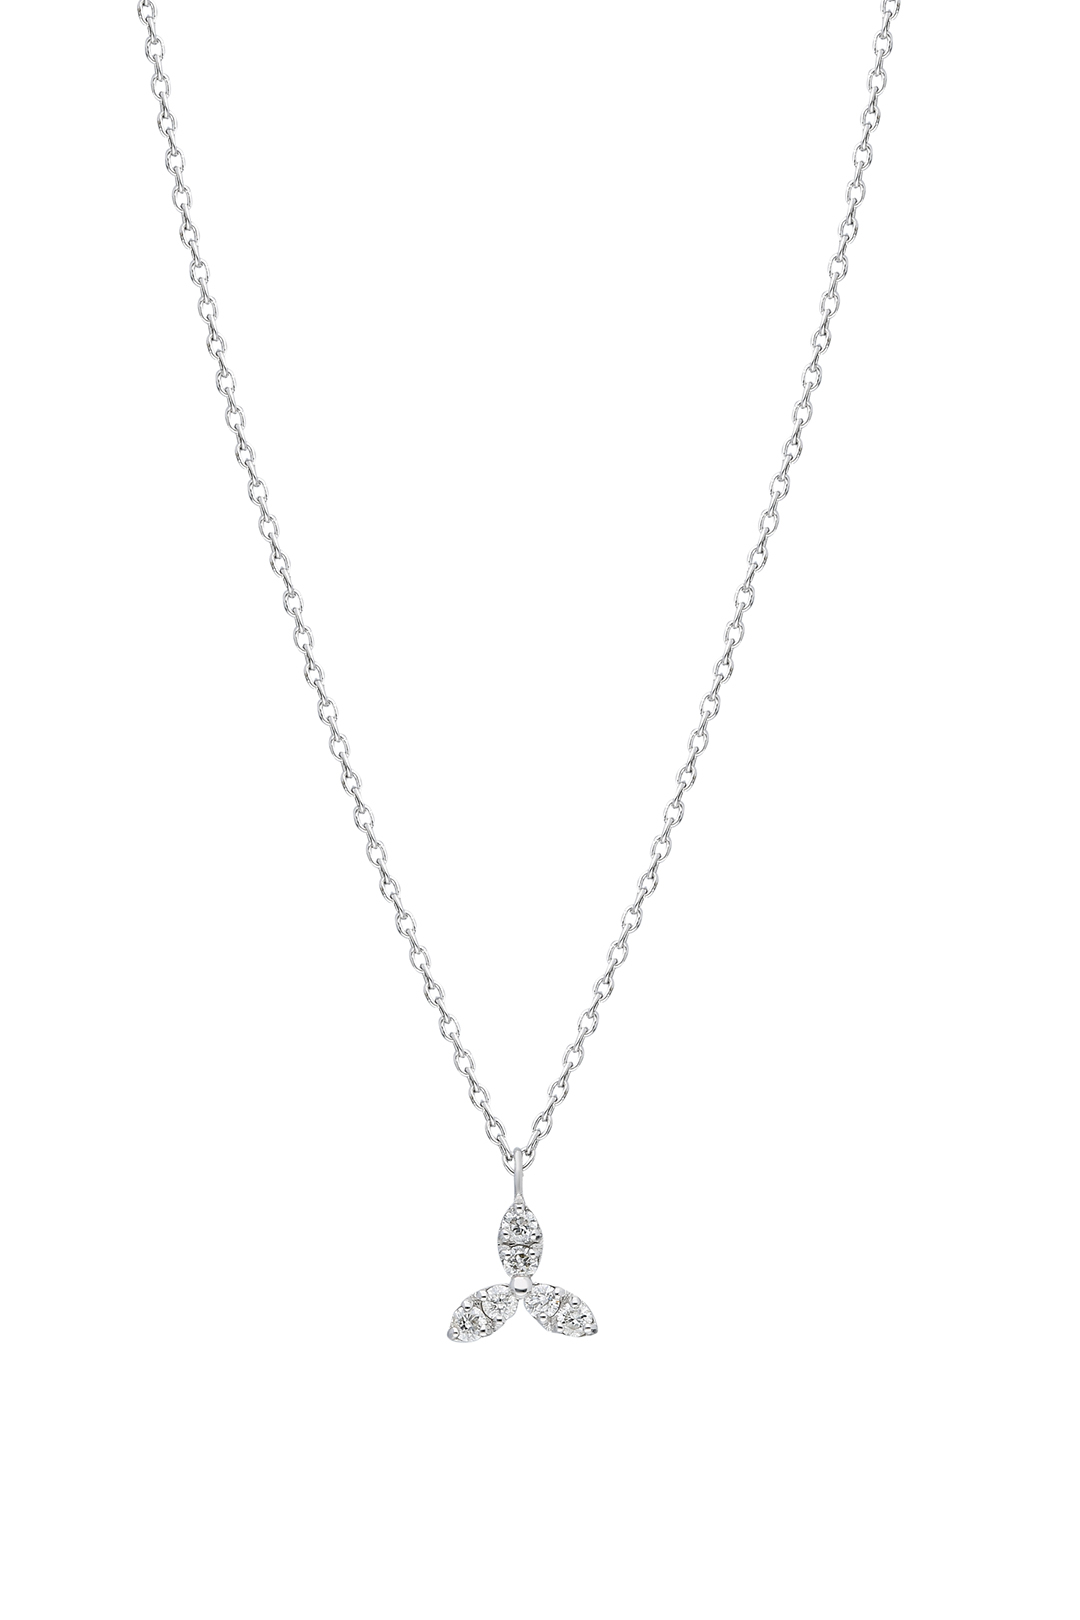 WHITE CLOVER AND DIAMOND NECKLACE